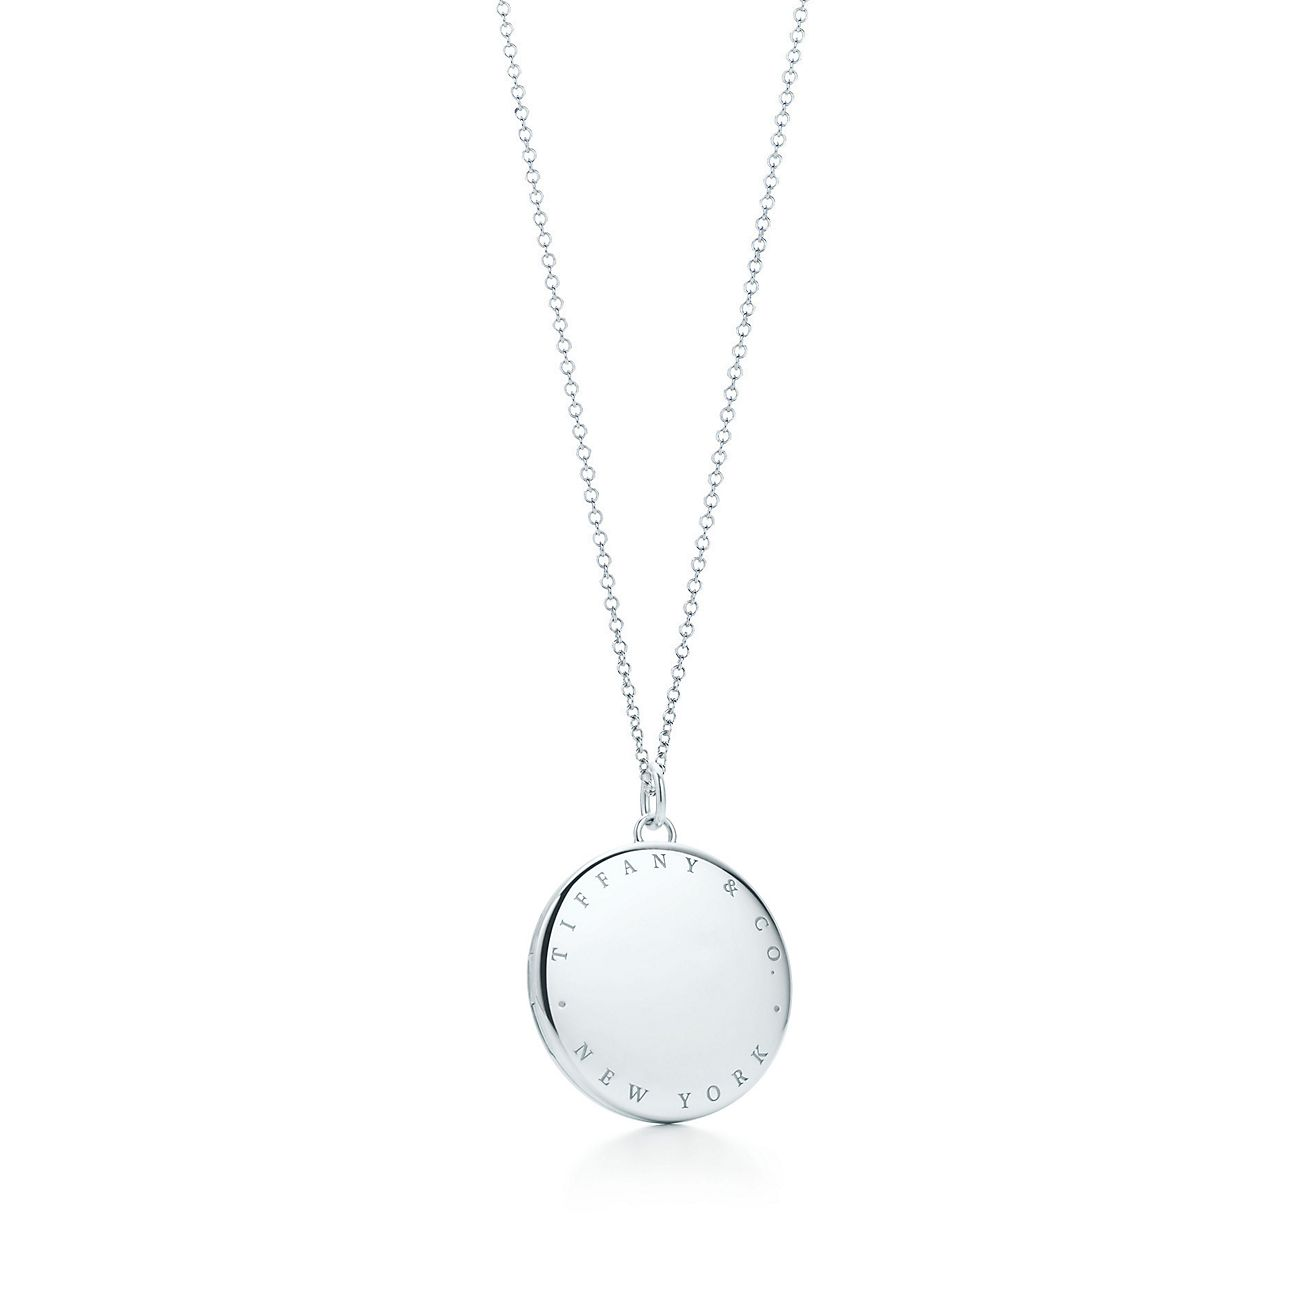 Tiffany co round locket pendant in sterling silver extra large round locket pendant in sterling silver extra large tiffany co aloadofball Gallery